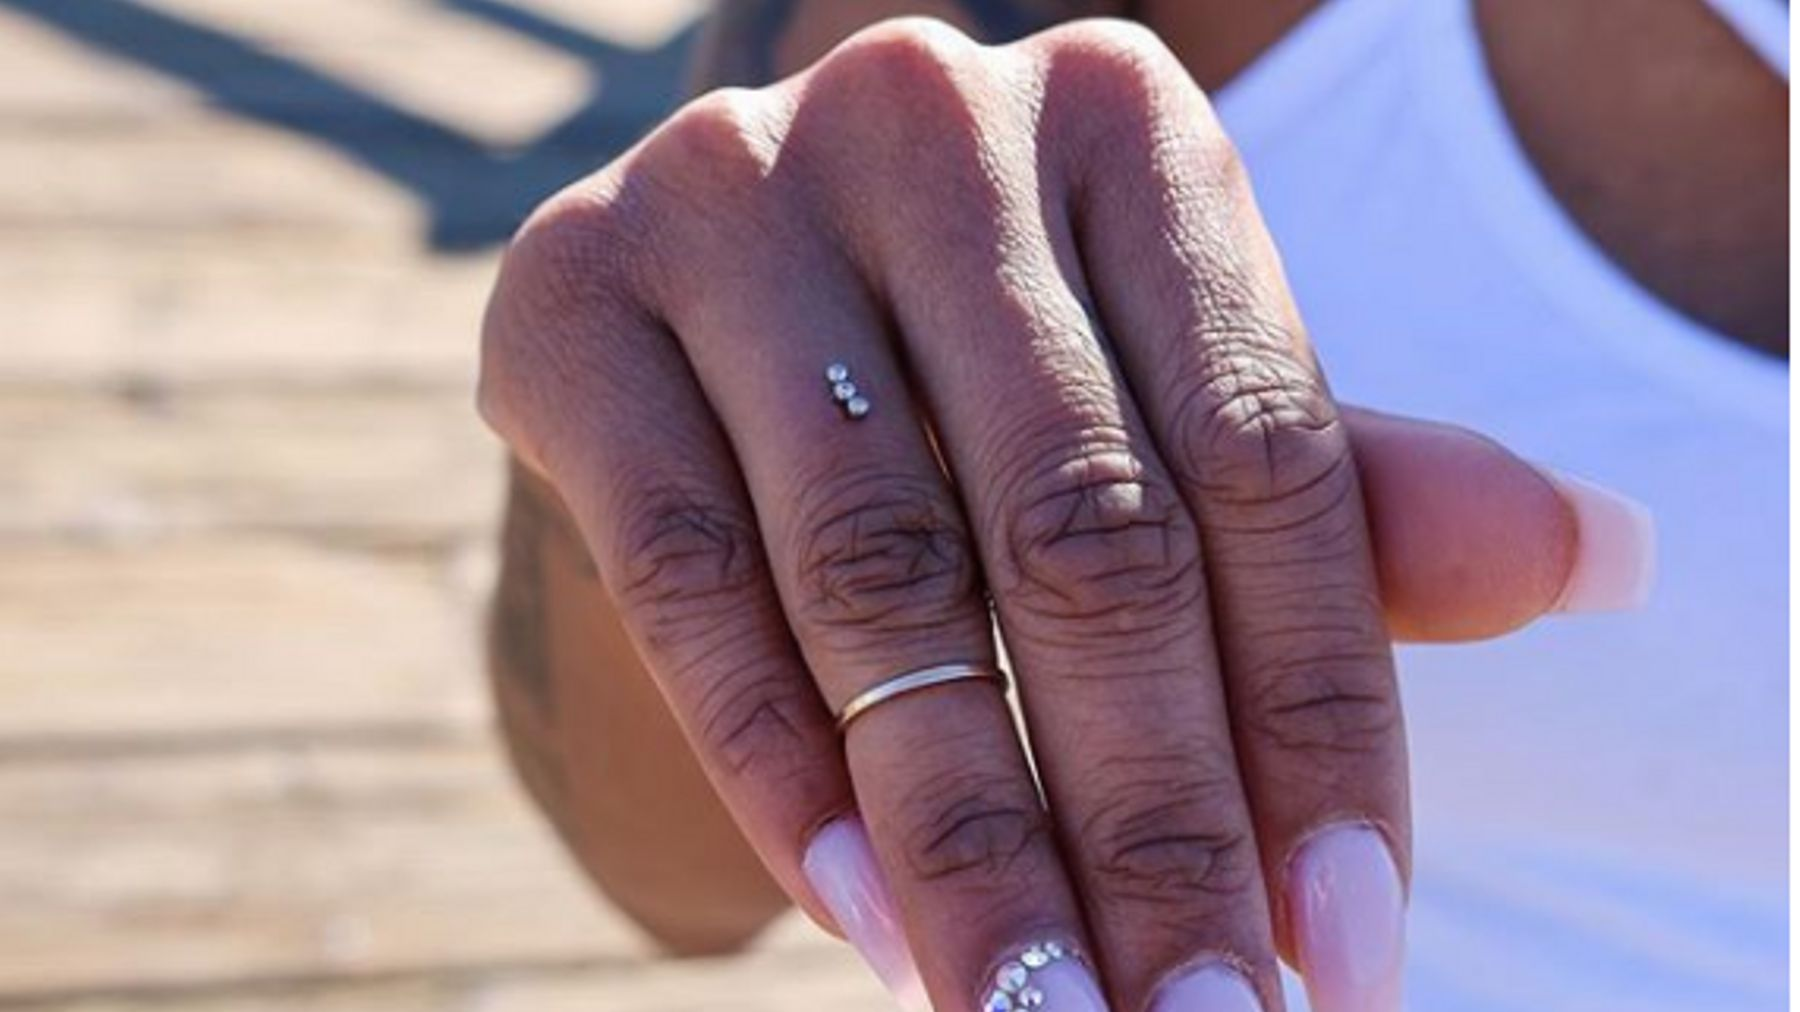 Piercing Your Ring Finger Is The Latest Engagement Trend